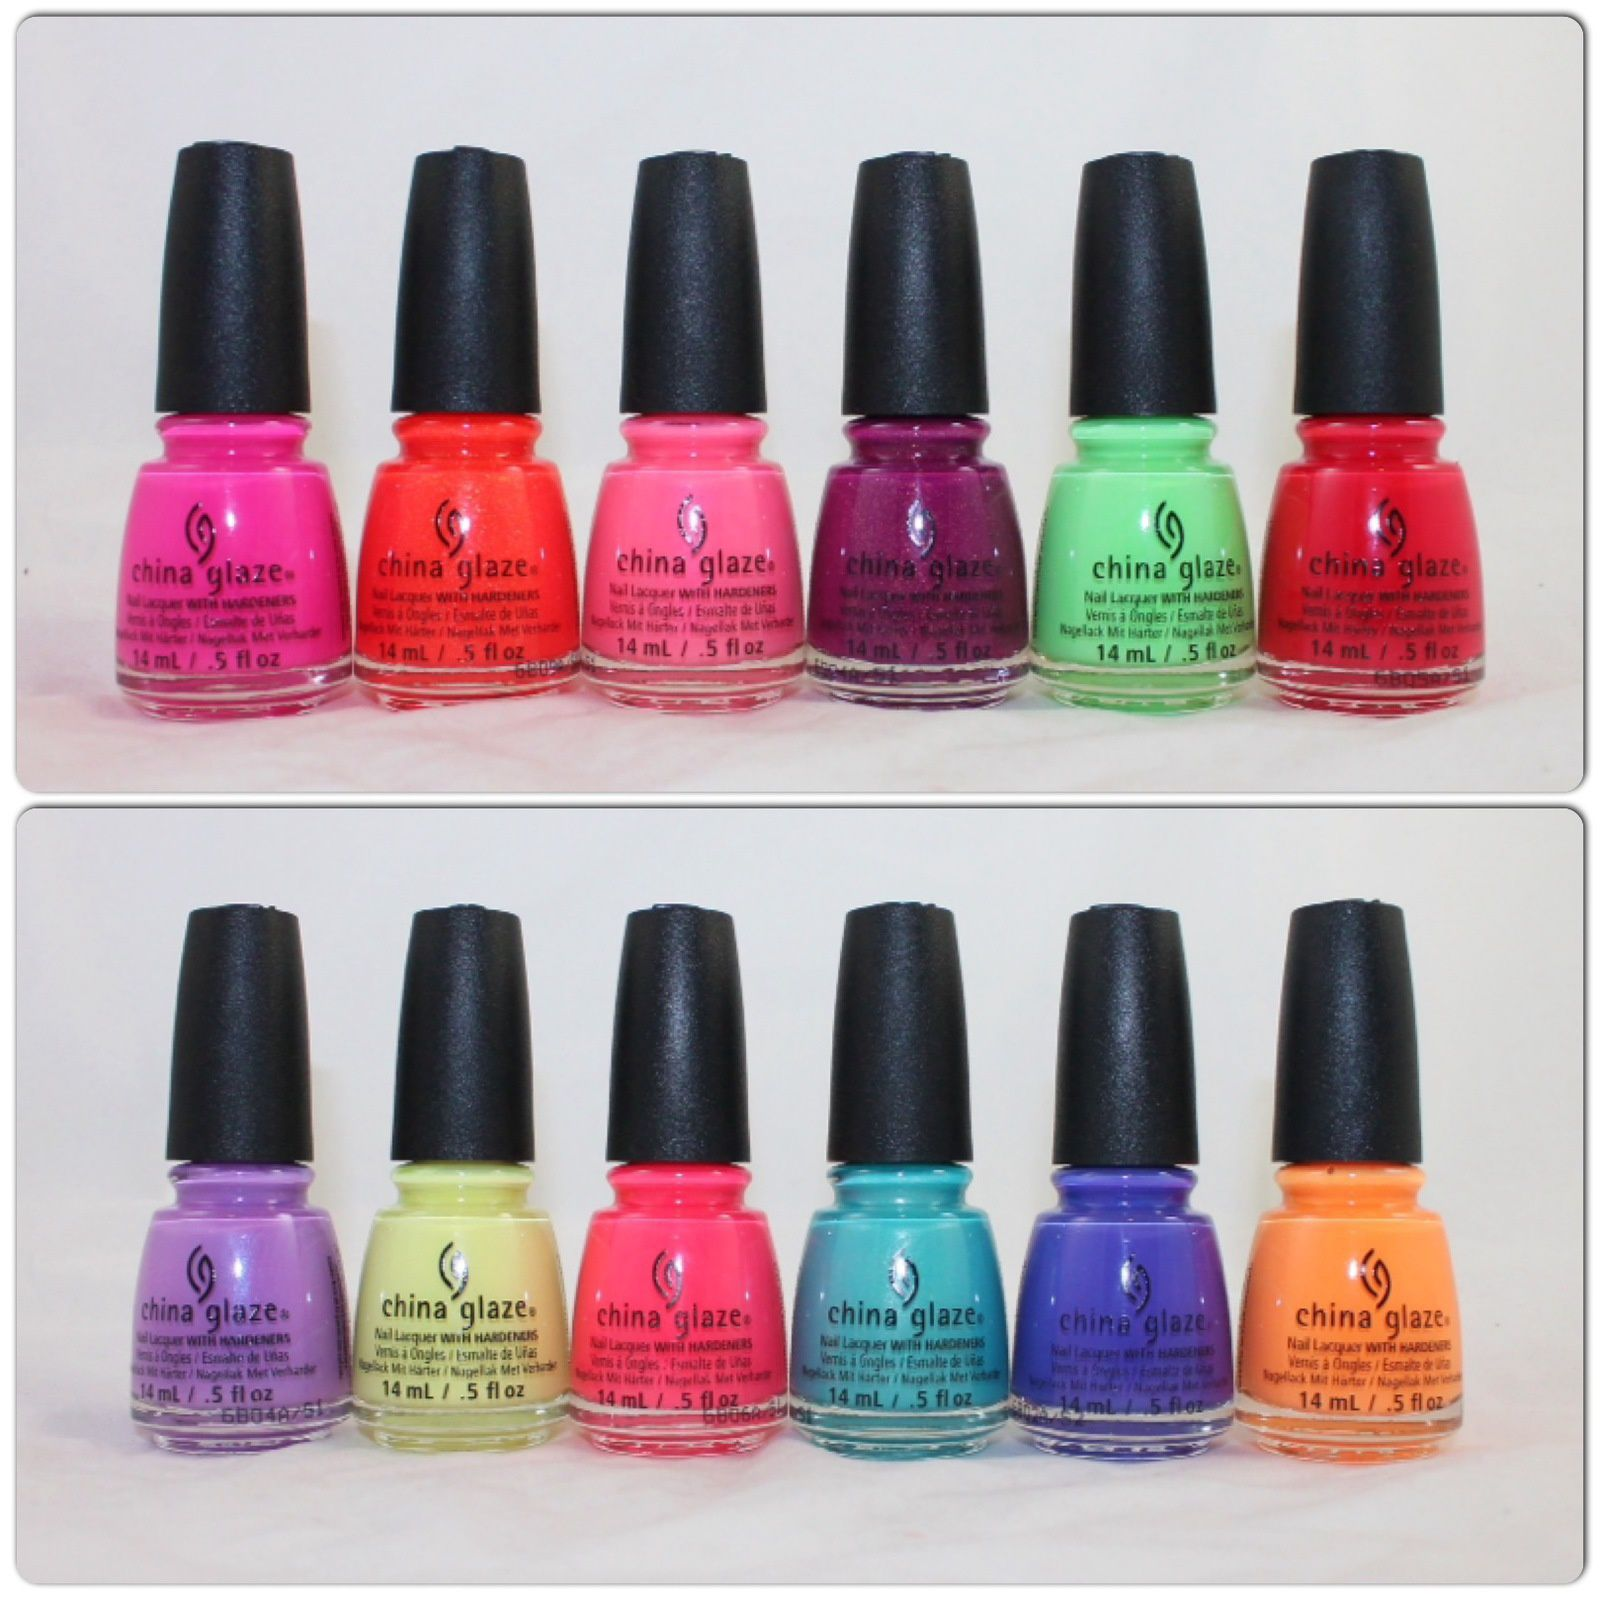 China Glaze Summer 2016 Lite Brites: I'll Pink to That, Papa Don't Peach, Lip Smackin' Good, We Got the Beet, Lime fater Lime, Hot Flash, Let's Jam, Whip it Good, Bite Me, What I Like About Blue, I Got a Blue Attitude, None of Your Risky Business